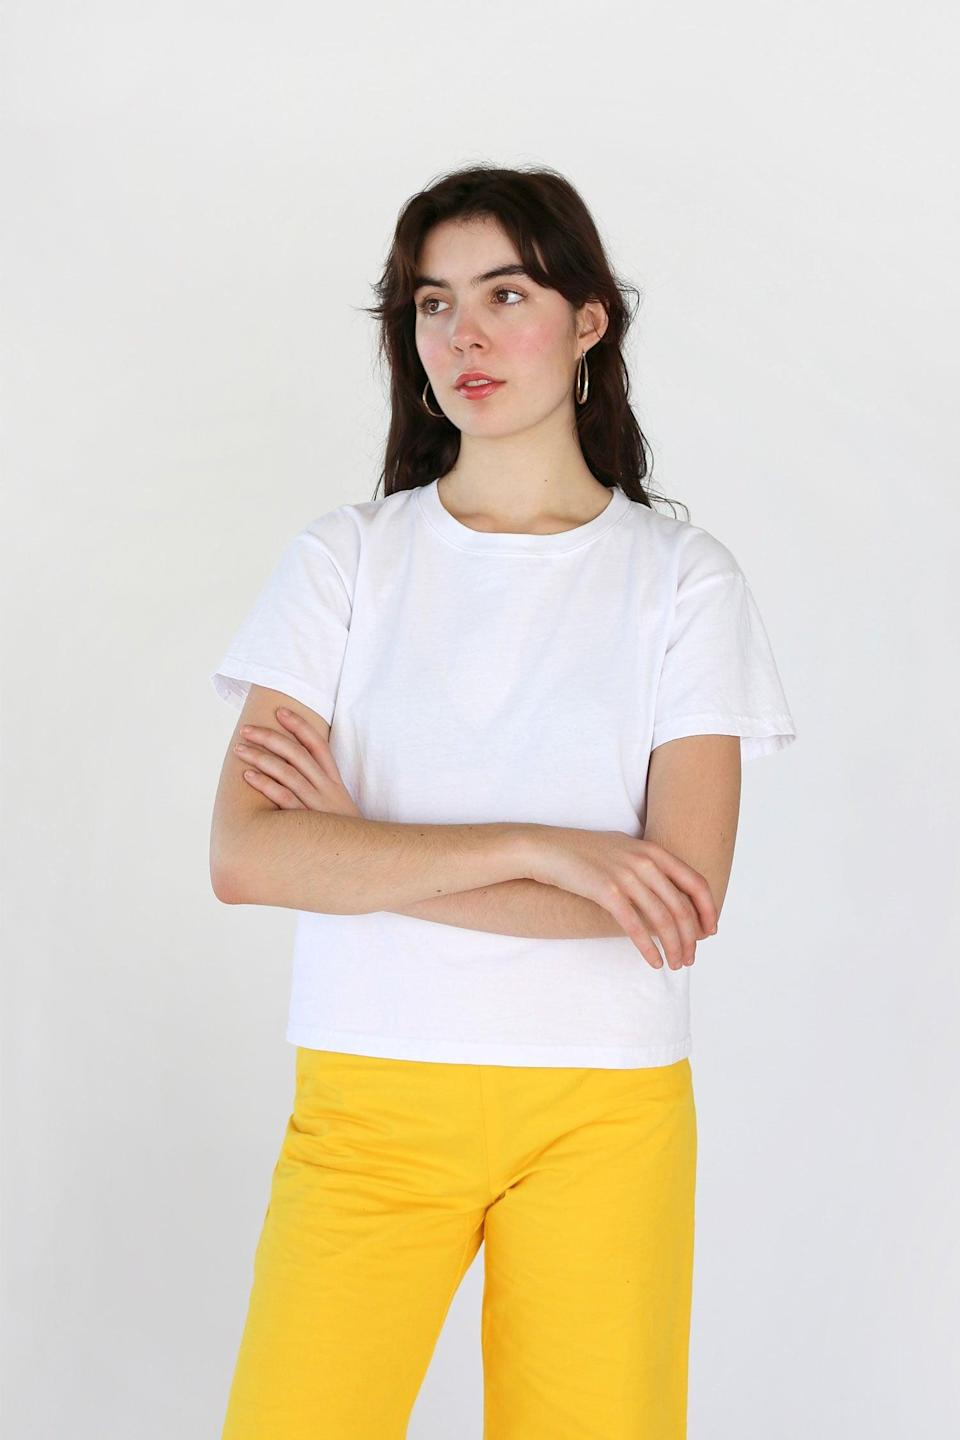 """<p>Everybody.World is an LA-based brand created by Iris Alonzo and Carolina Crespo. The brand launched the world's first 100 percent recycled cotton t-shirt, dubbed the """"Trash Tee,"""" back in 2016, and have been dedicated to furthering sustainable fashion ever since. </p> <p><strong>What We'd Buy</strong>: <span>Everybody.World Recycled Cotton Boxy Trash Tee</span> ($39)</p>"""